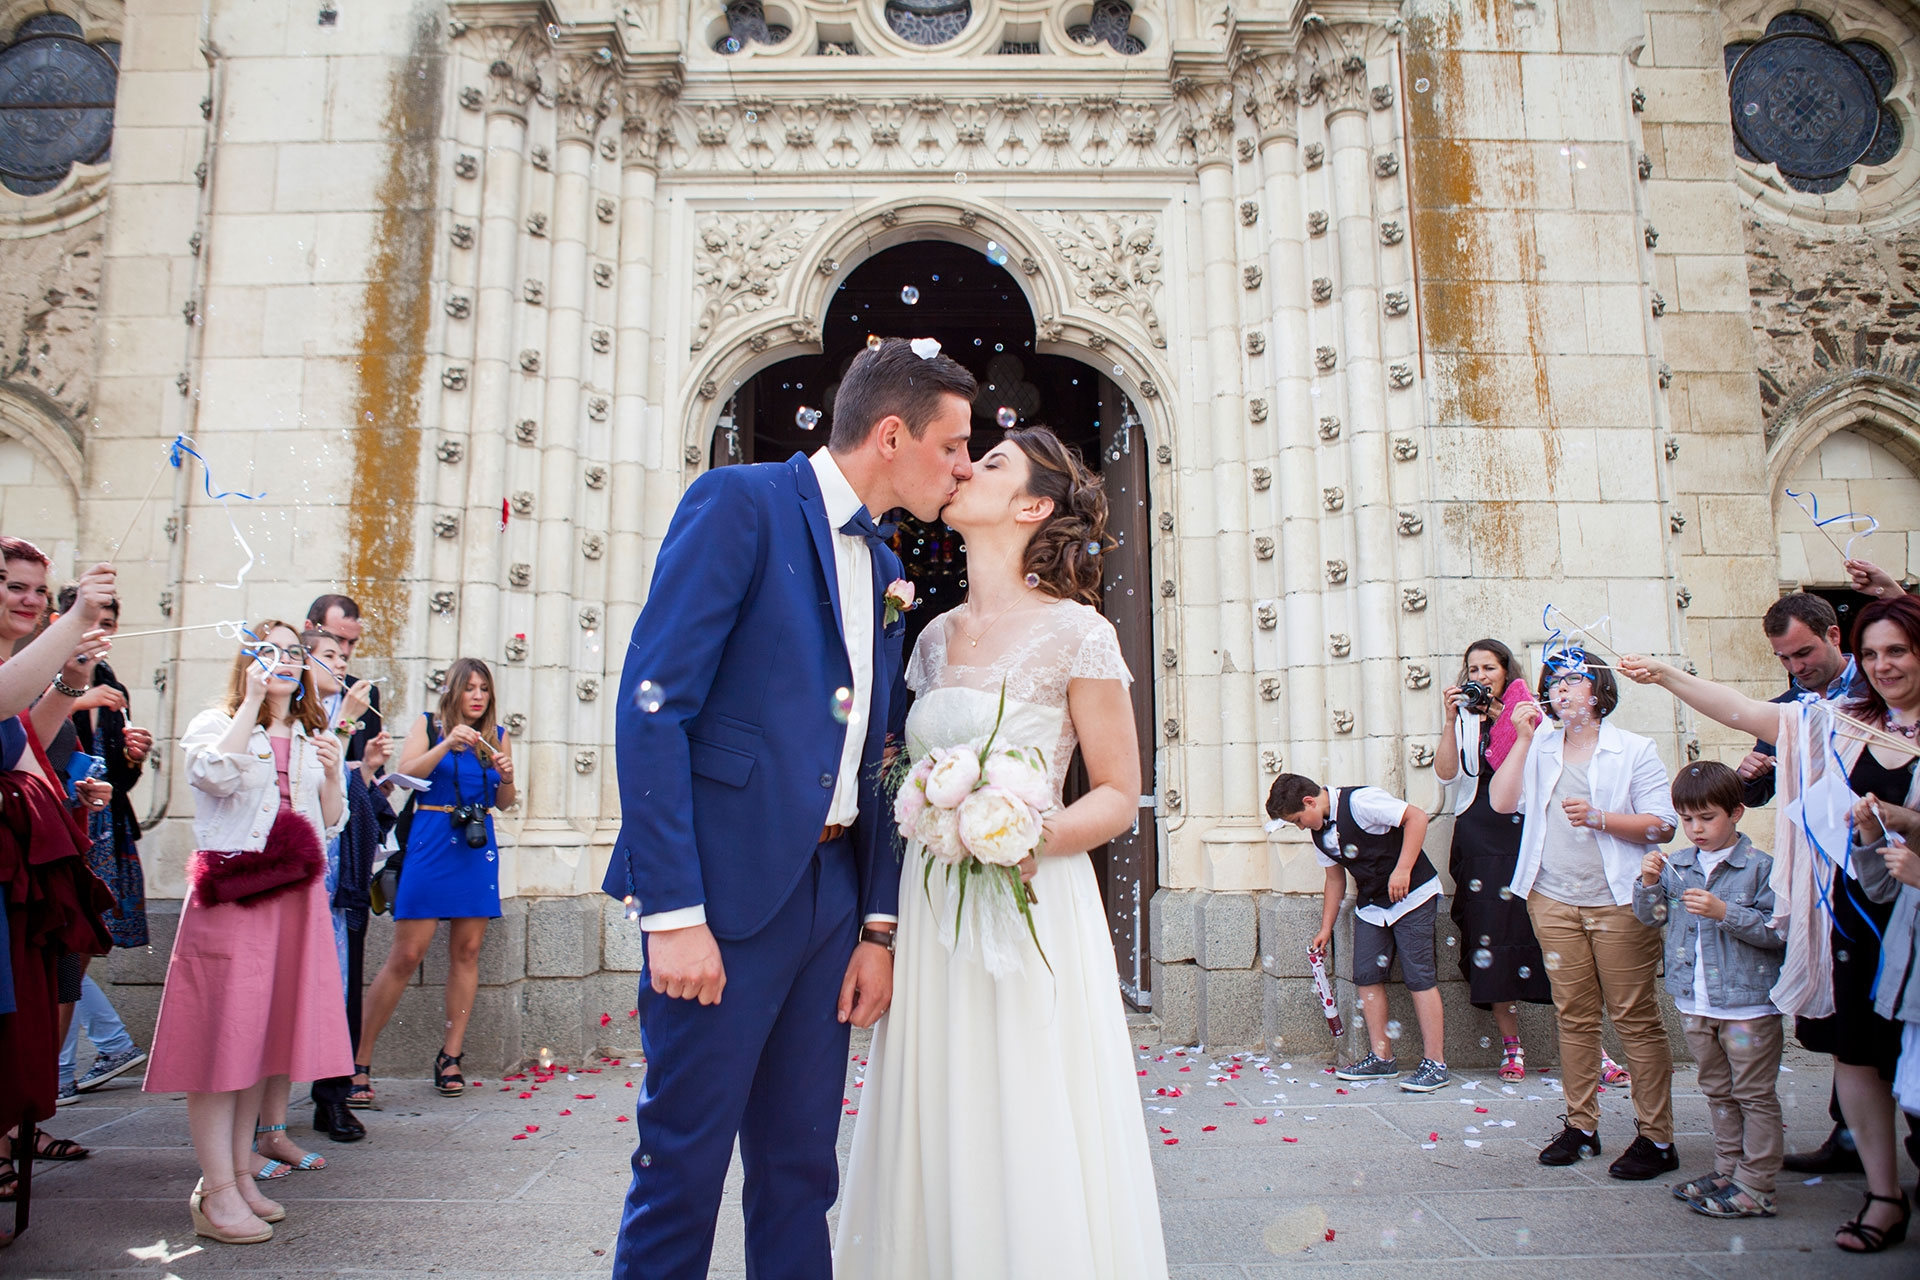 particuliers-evenements-mariages-oui-clementine&alexandre-41